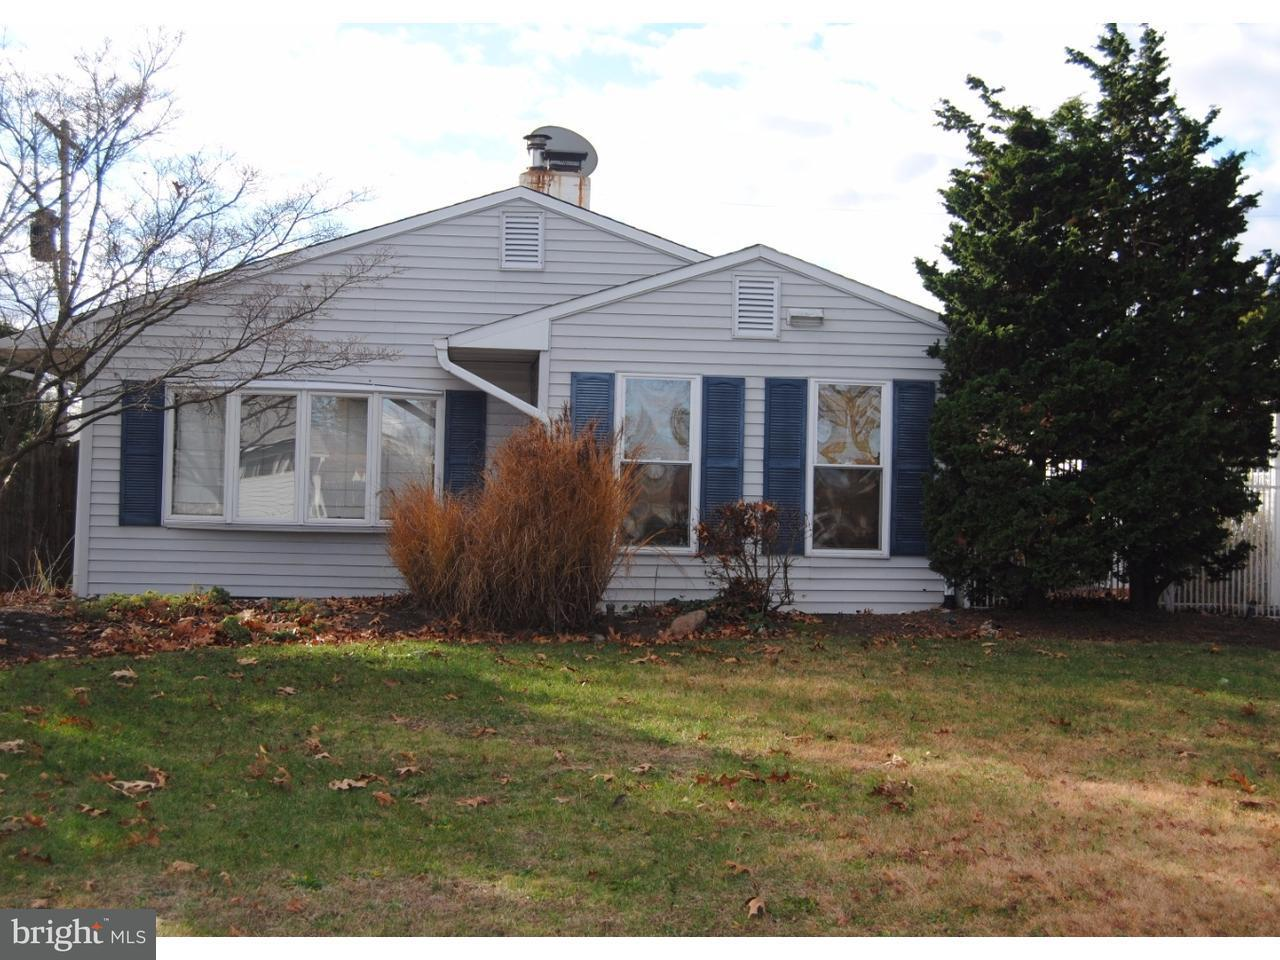 Single Family Home for Rent at 40 SHADETREE Lane Levittown, Pennsylvania 19055 United States